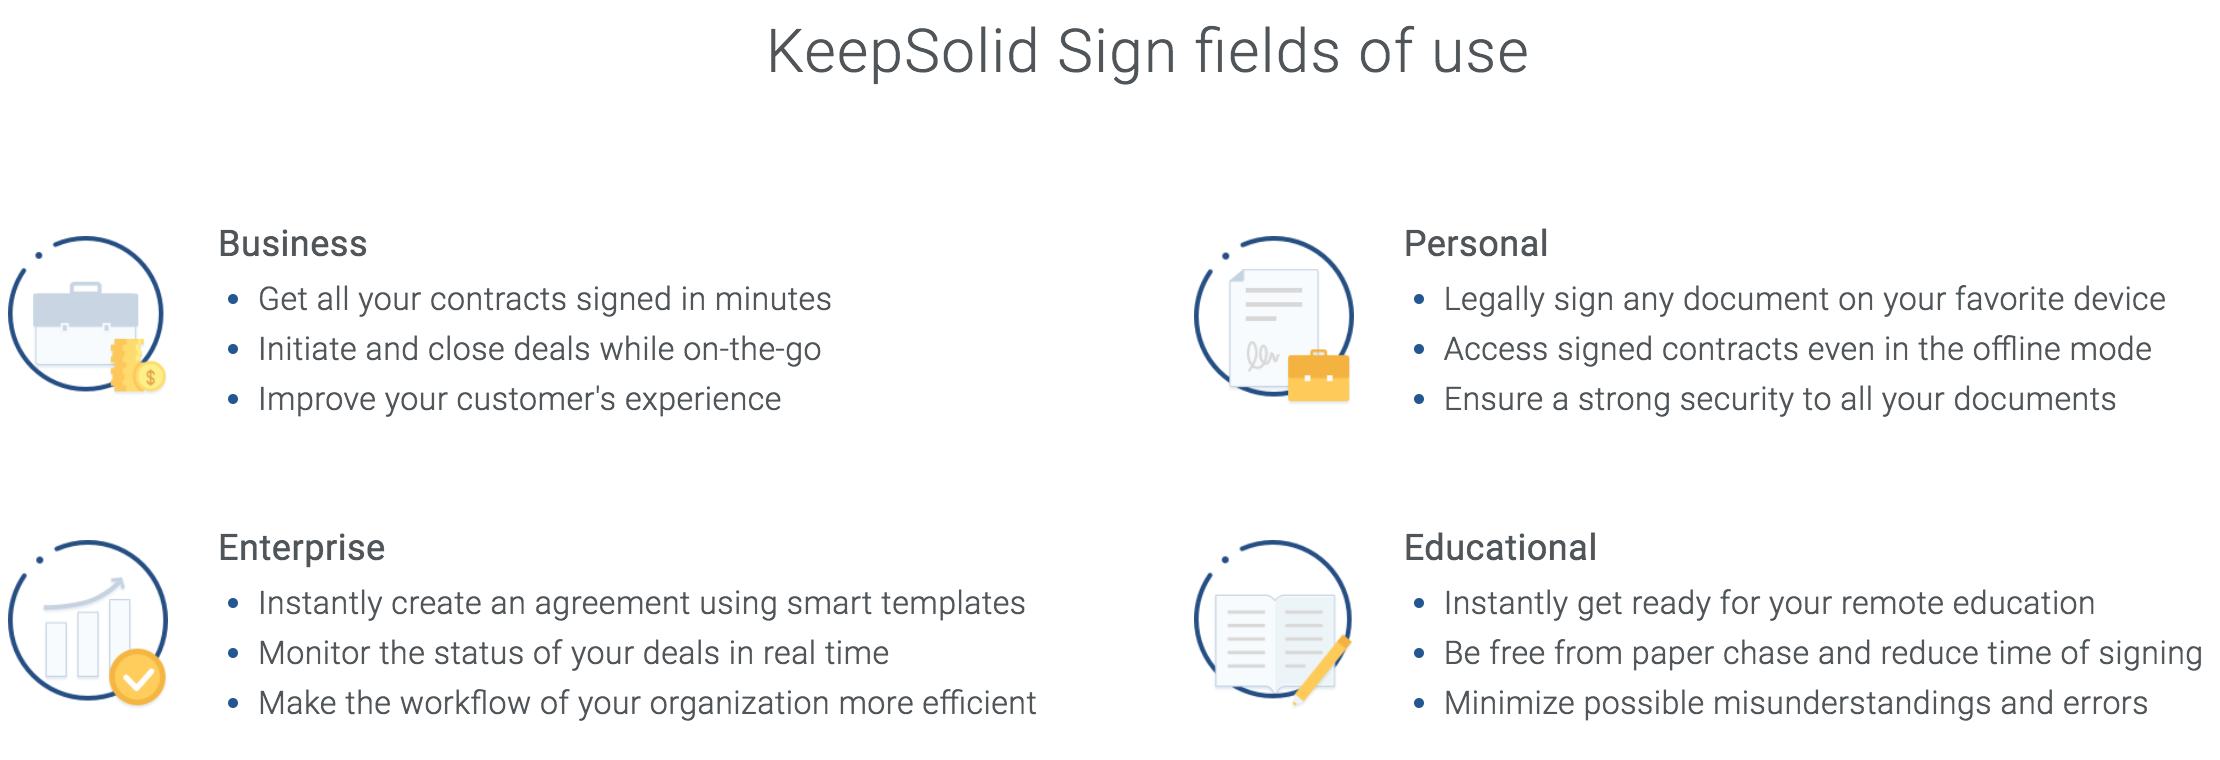 KeepSolid Sign fields